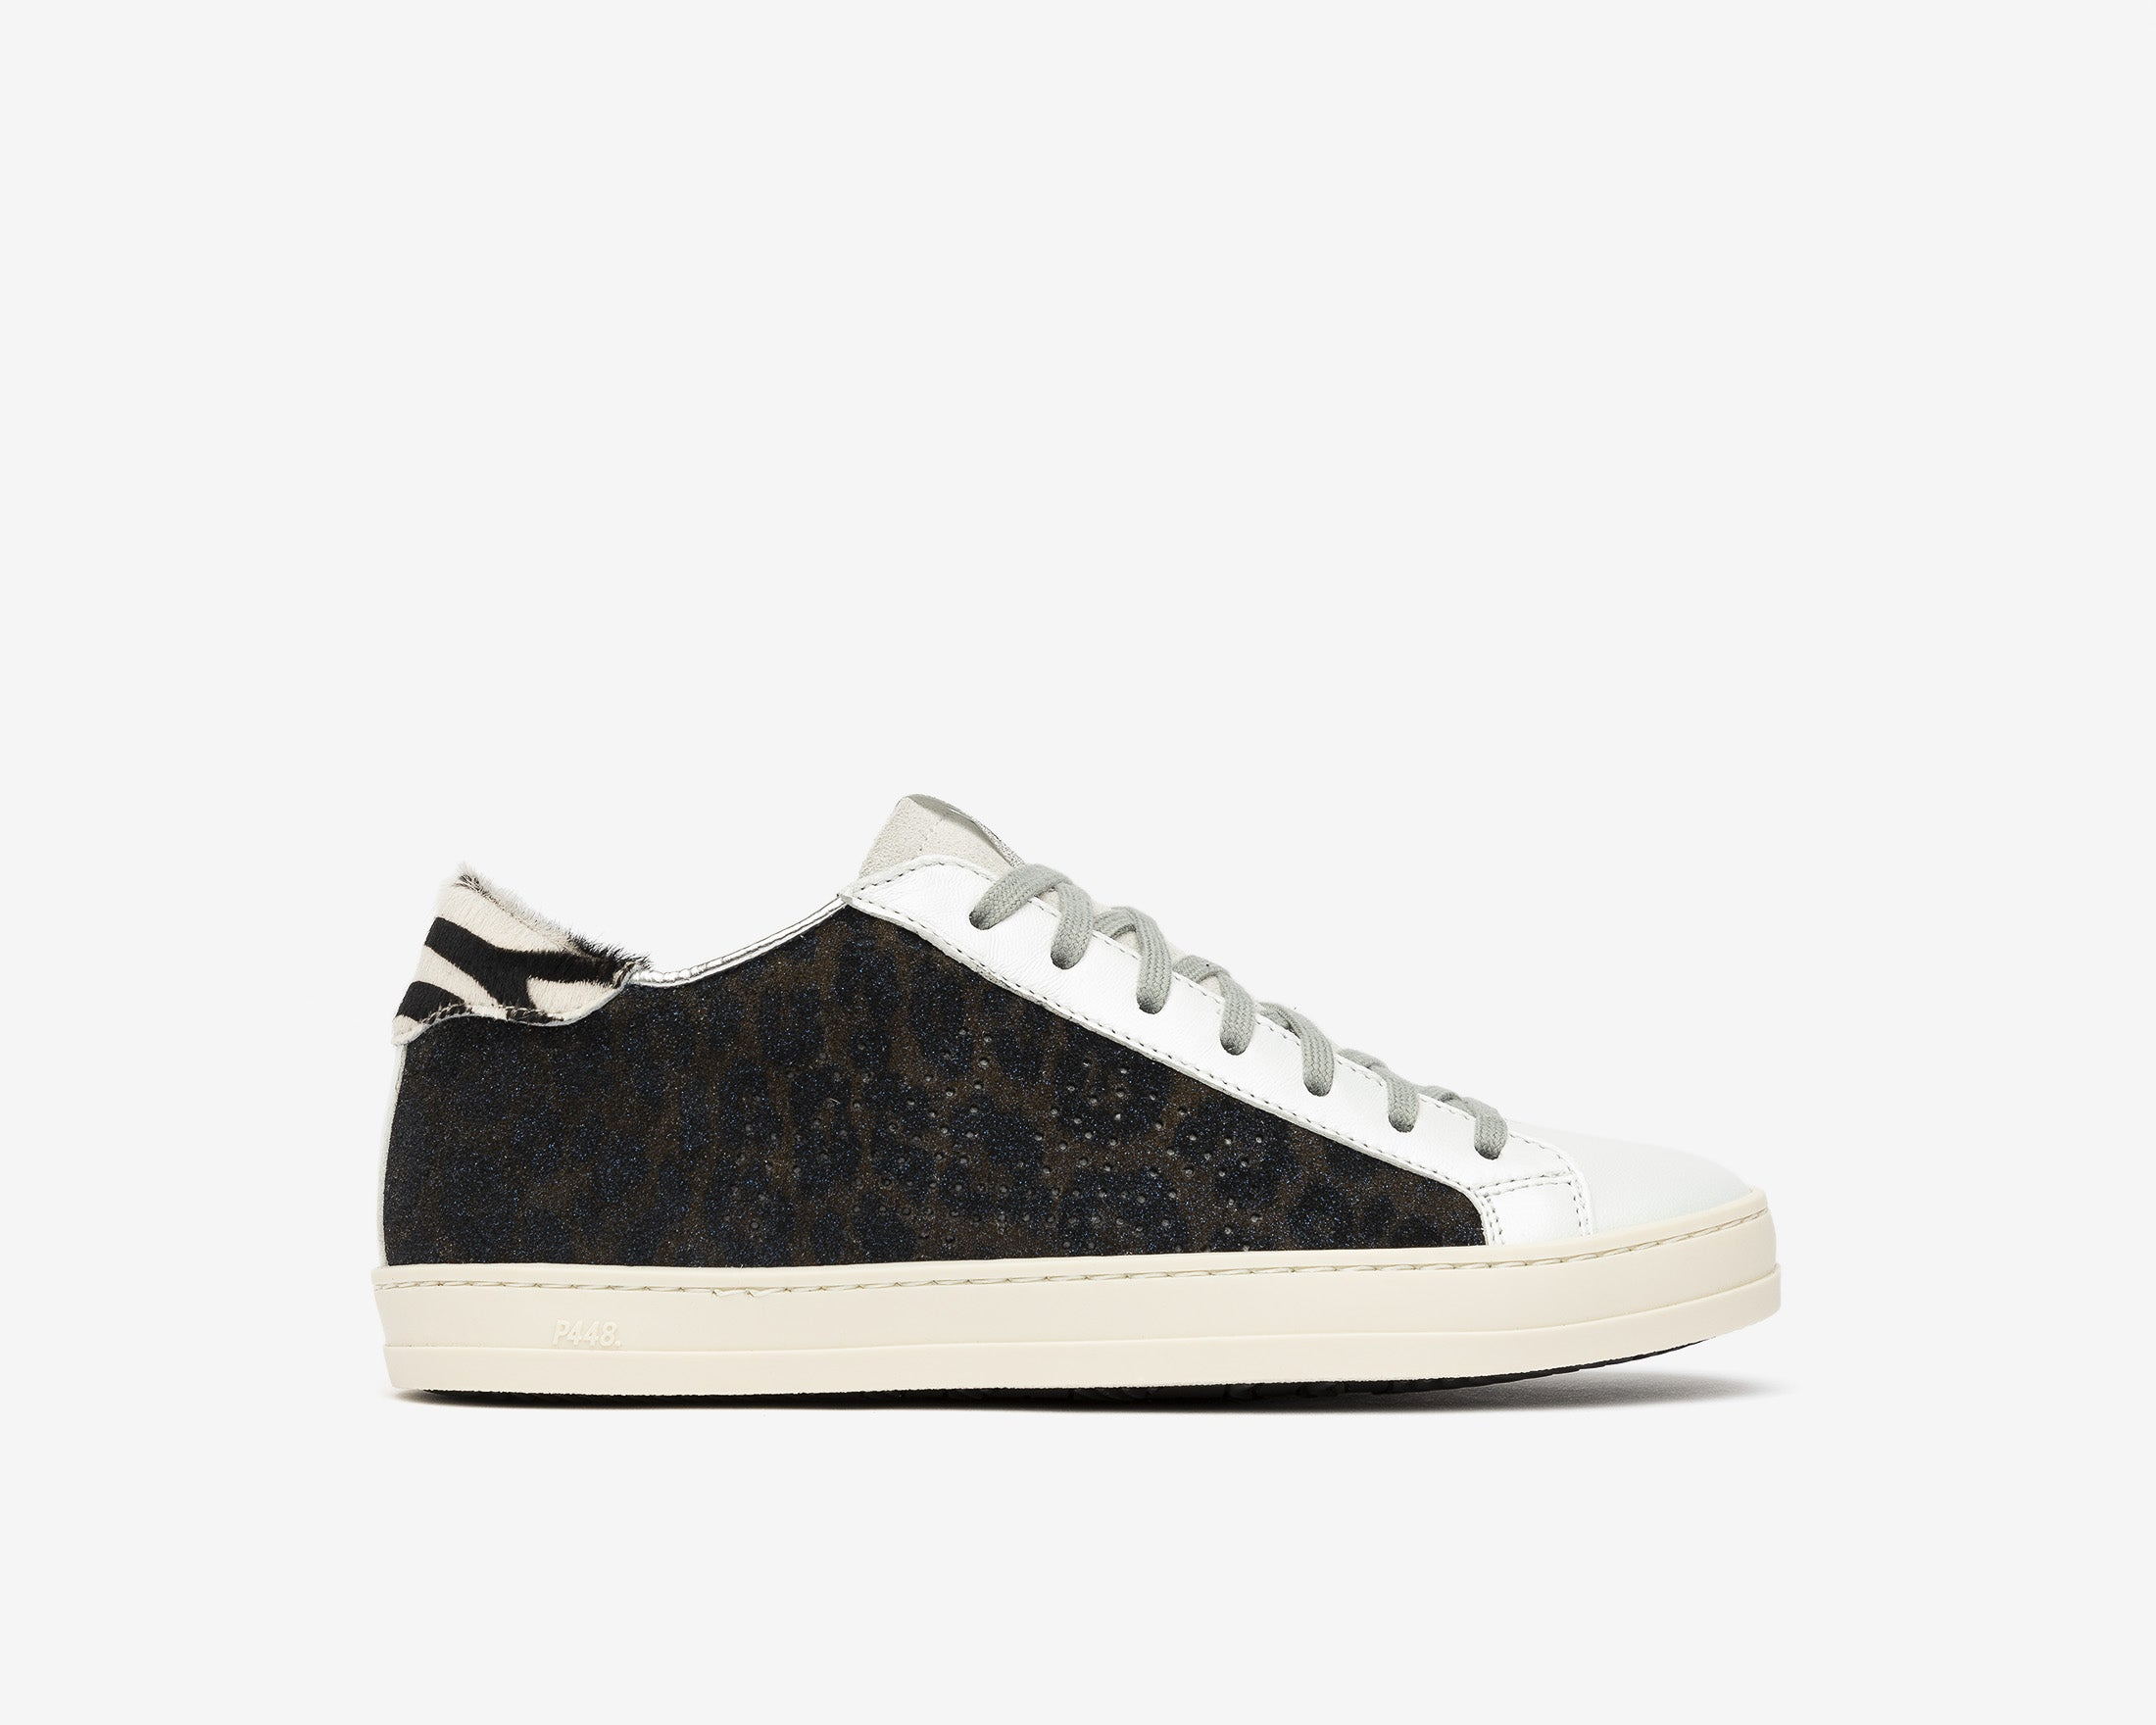 JohnBS Low-Top Sneaker in Silver Glitter - Profile